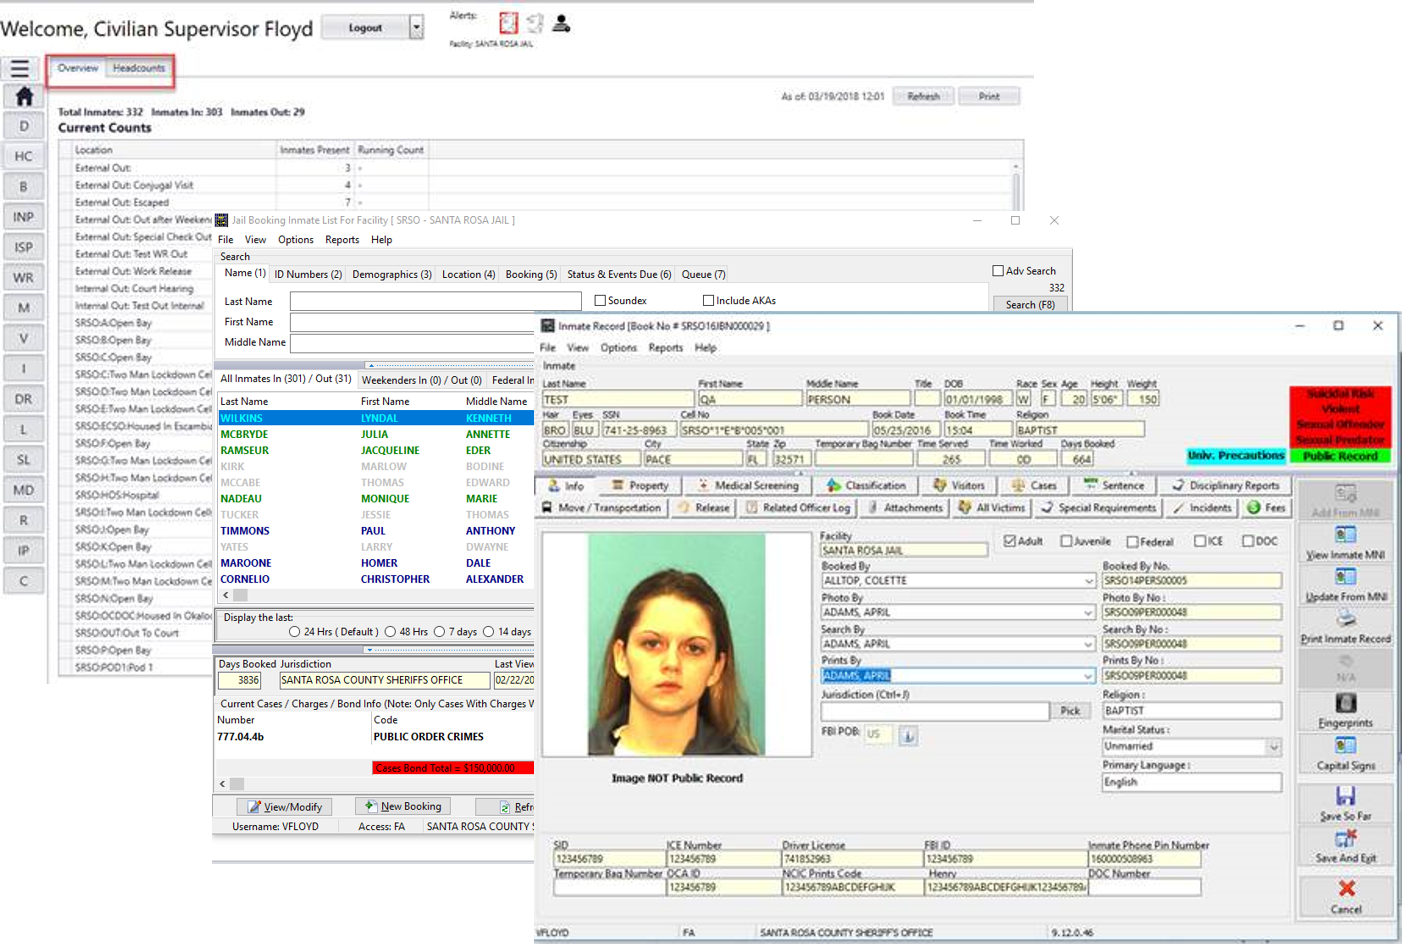 SmartJAIL provides users with instant access to detailed inmate histories